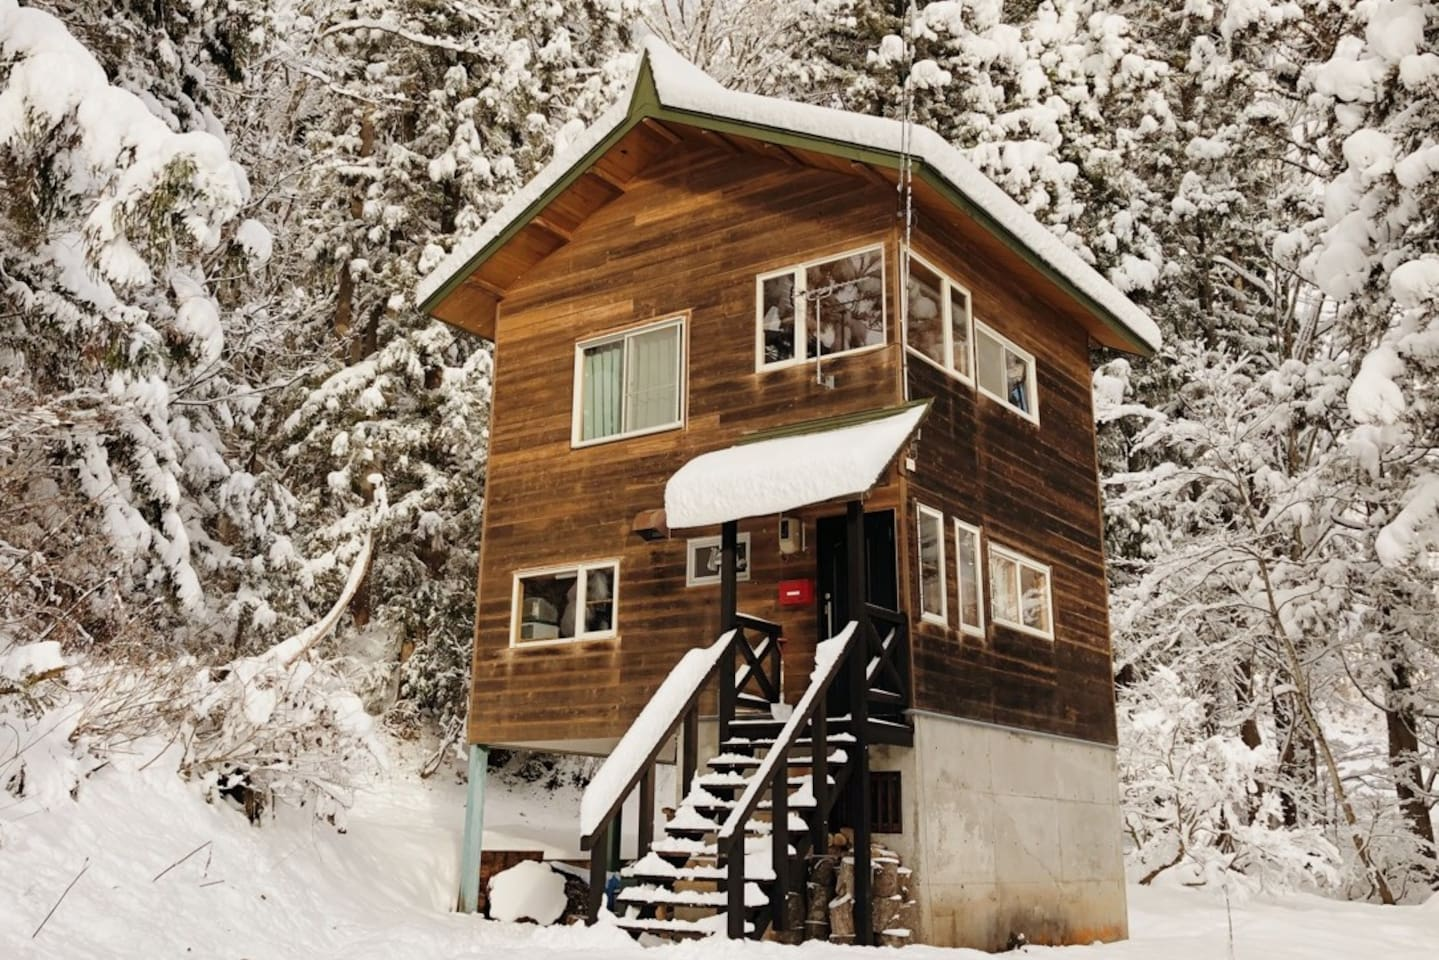 Home in the forest of Myoko's National Park Area